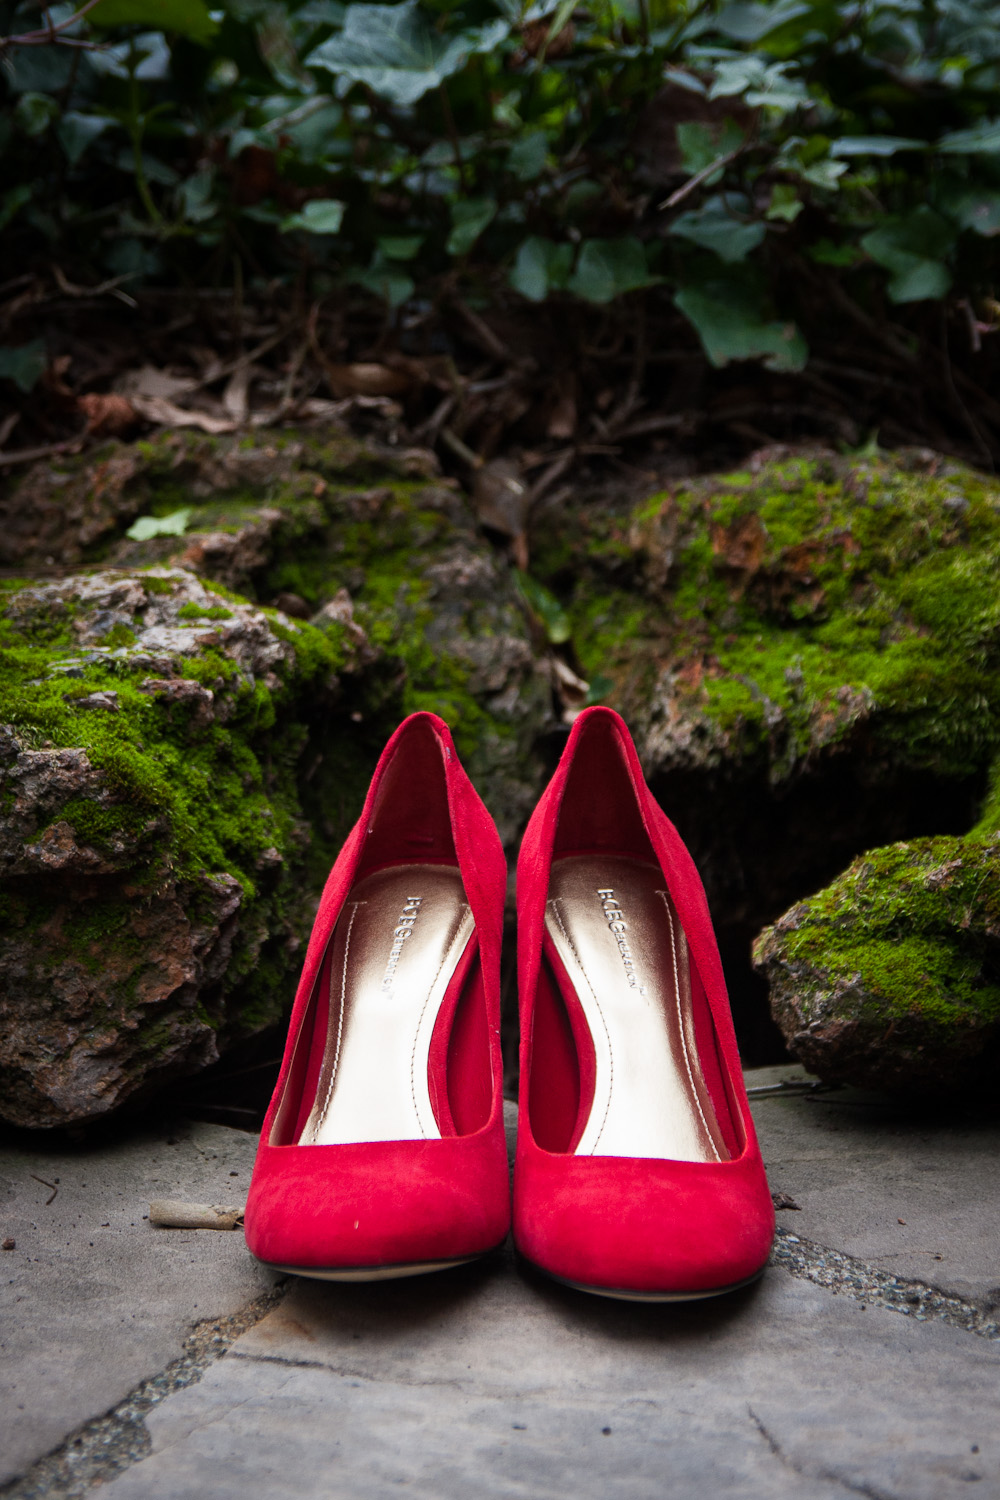 fairy tale shoes